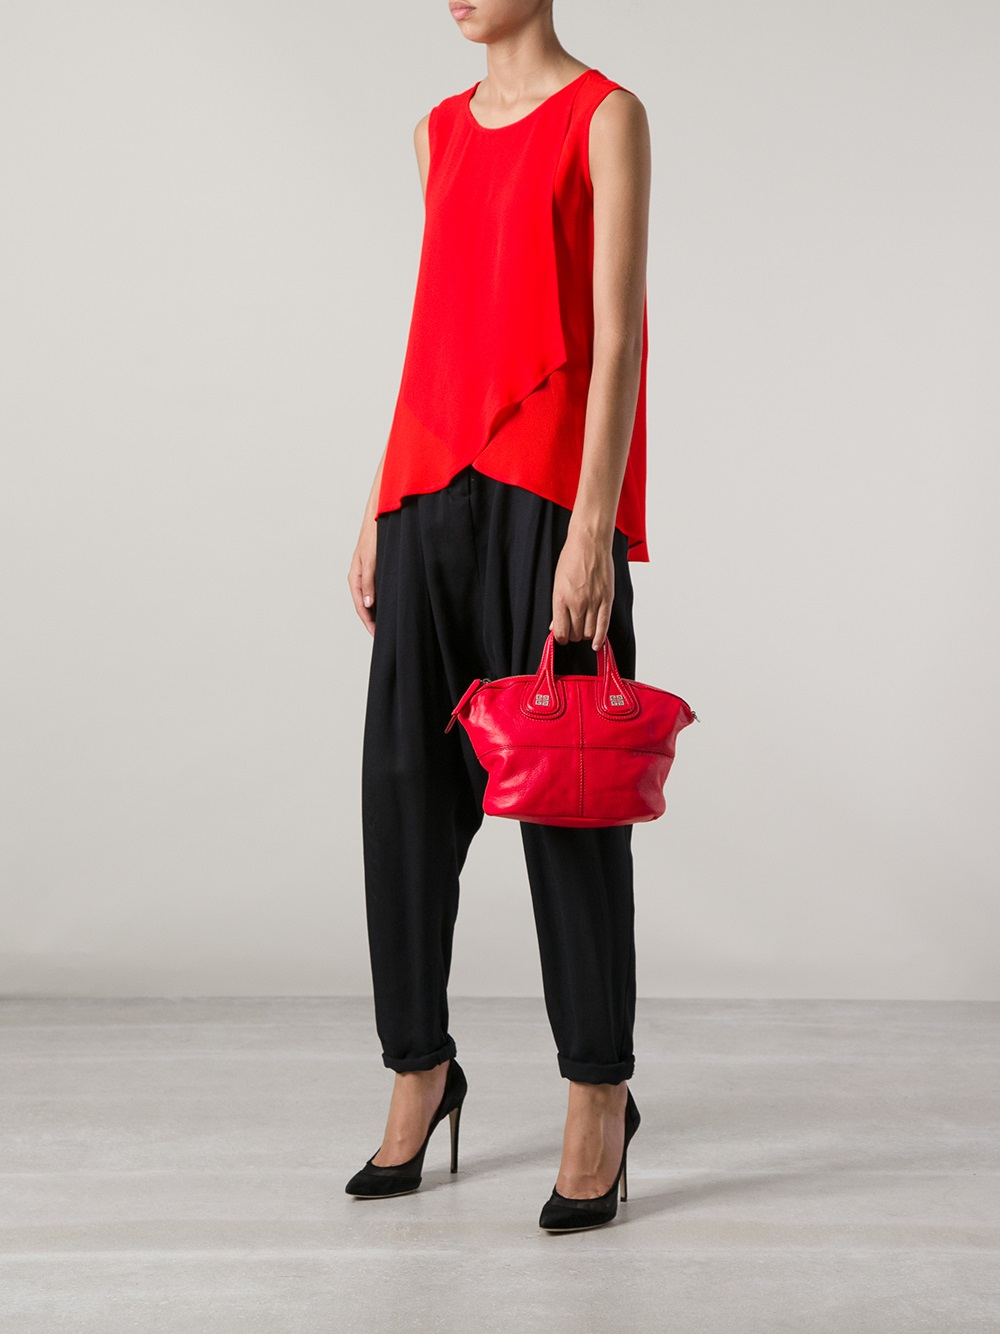 micro Nightingale tote - Red Givenchy Wide Range Of Online Cheap Sale Explore 100% Authentic Sale Online High Quality Clearance Best Wholesale xzglw